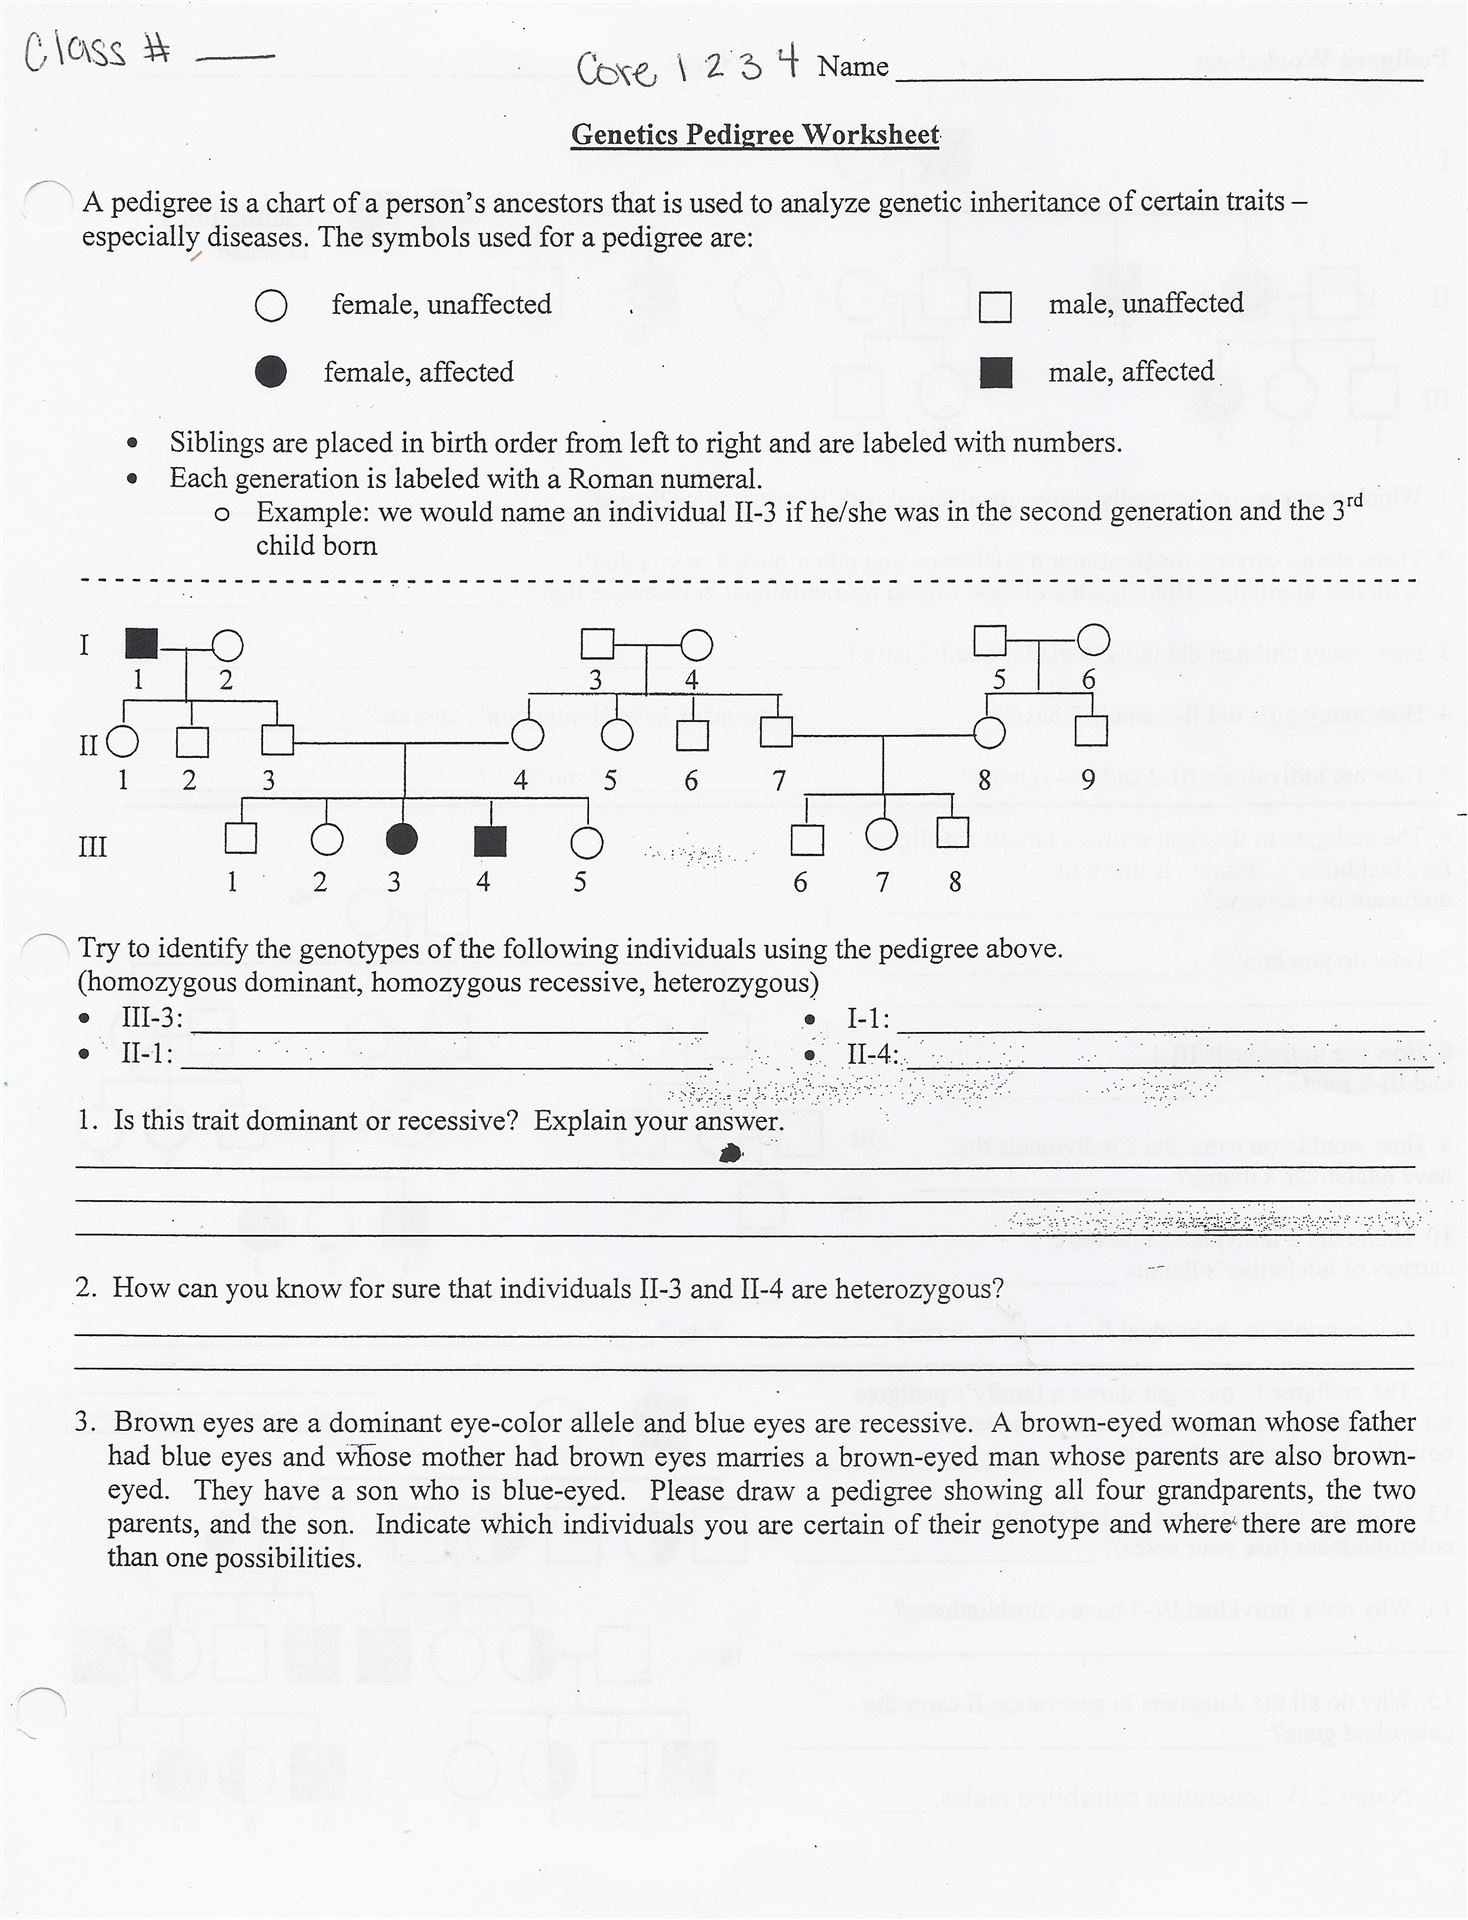 Free Worksheet Human Pedigree Worksheet human pedigree genetics worksheet workbook site jpeg 328kb answer key biology worksheet